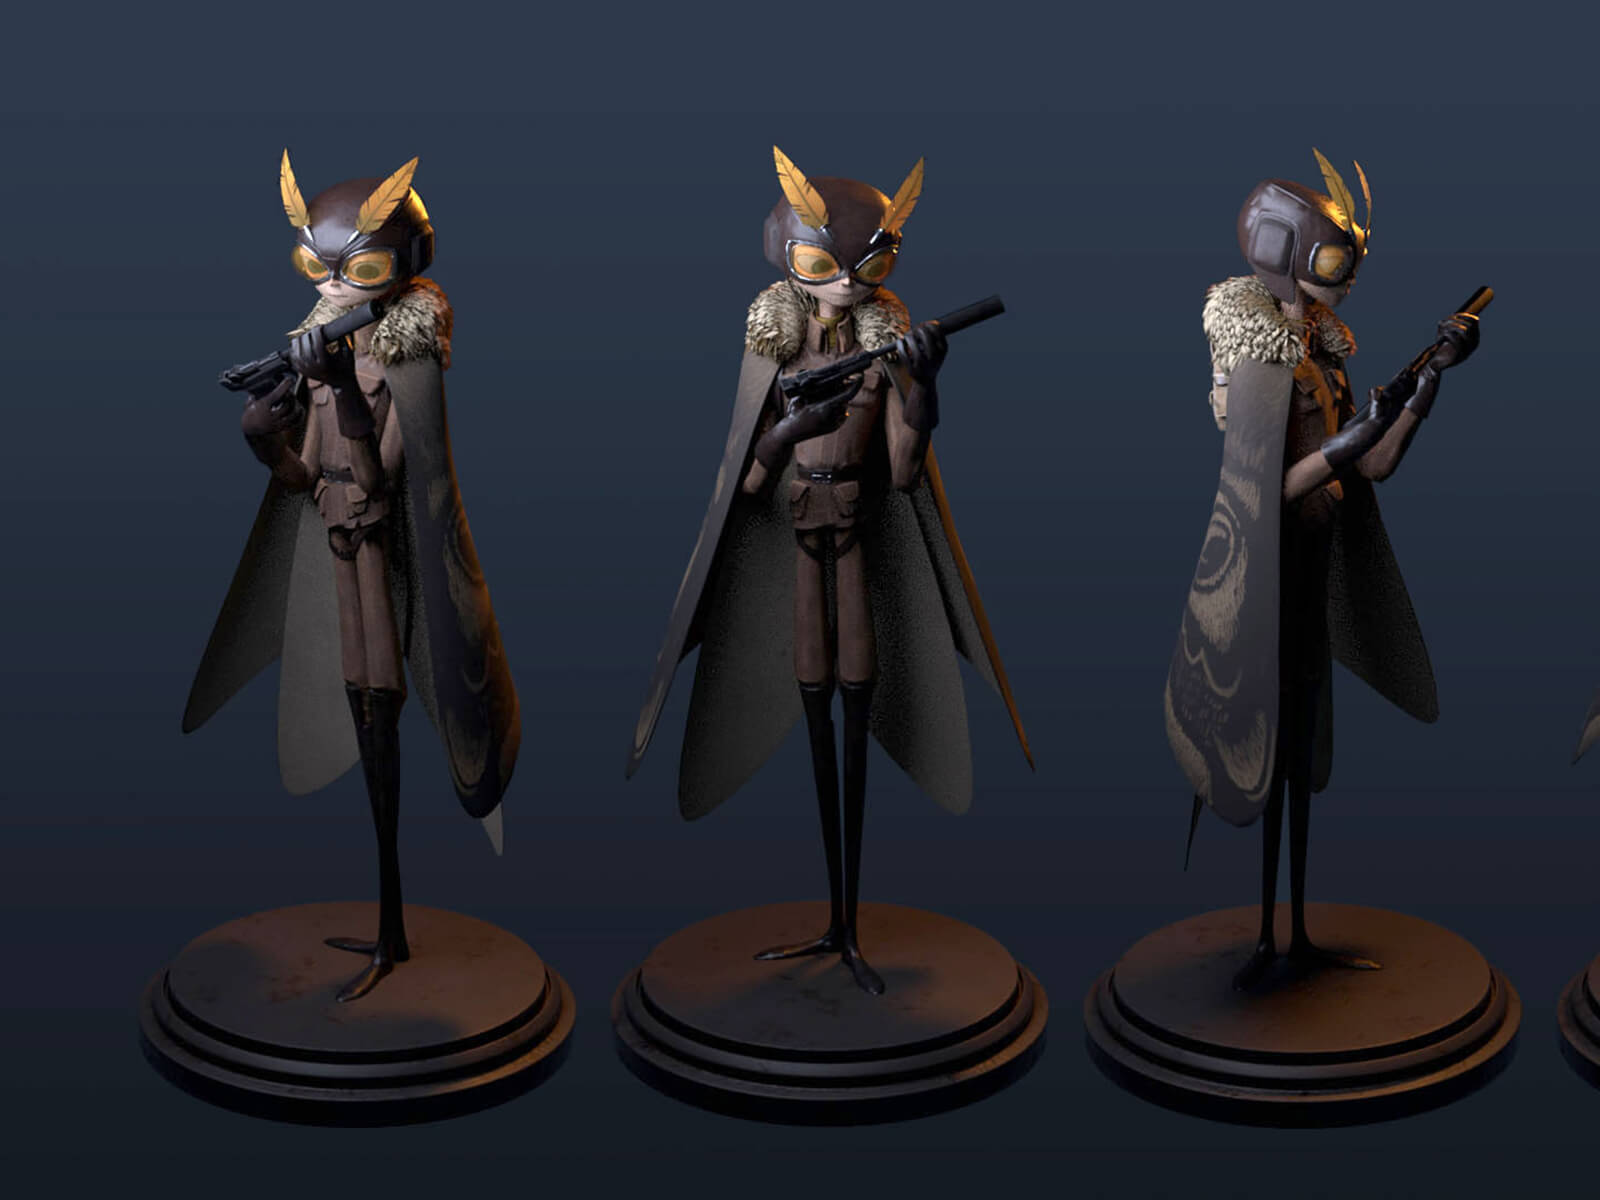 Multiple angles of a tall, thin character in goggles and a cape